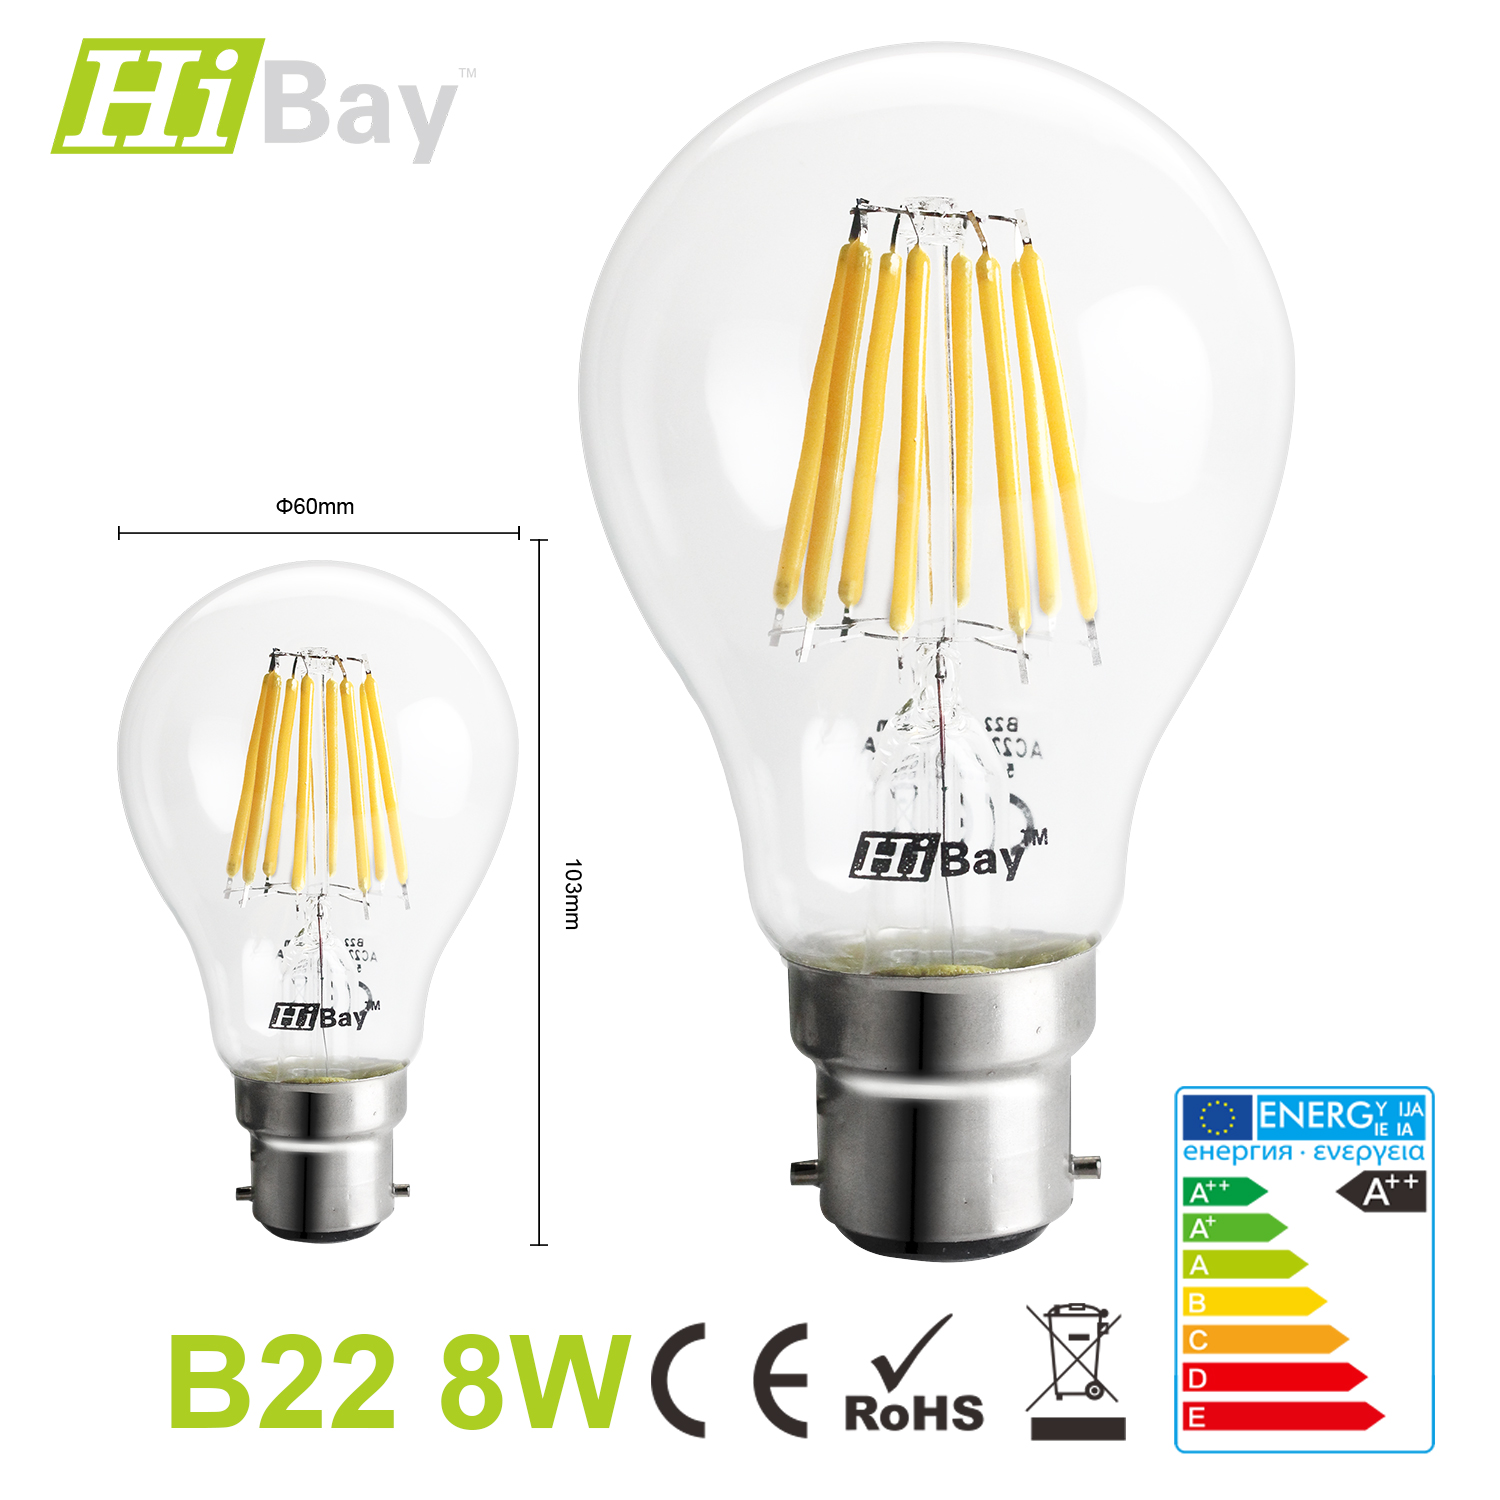 led filament lampen e14 e27 b22 qualit t leuchte strahler gl hbirne a60 st64 ebay. Black Bedroom Furniture Sets. Home Design Ideas